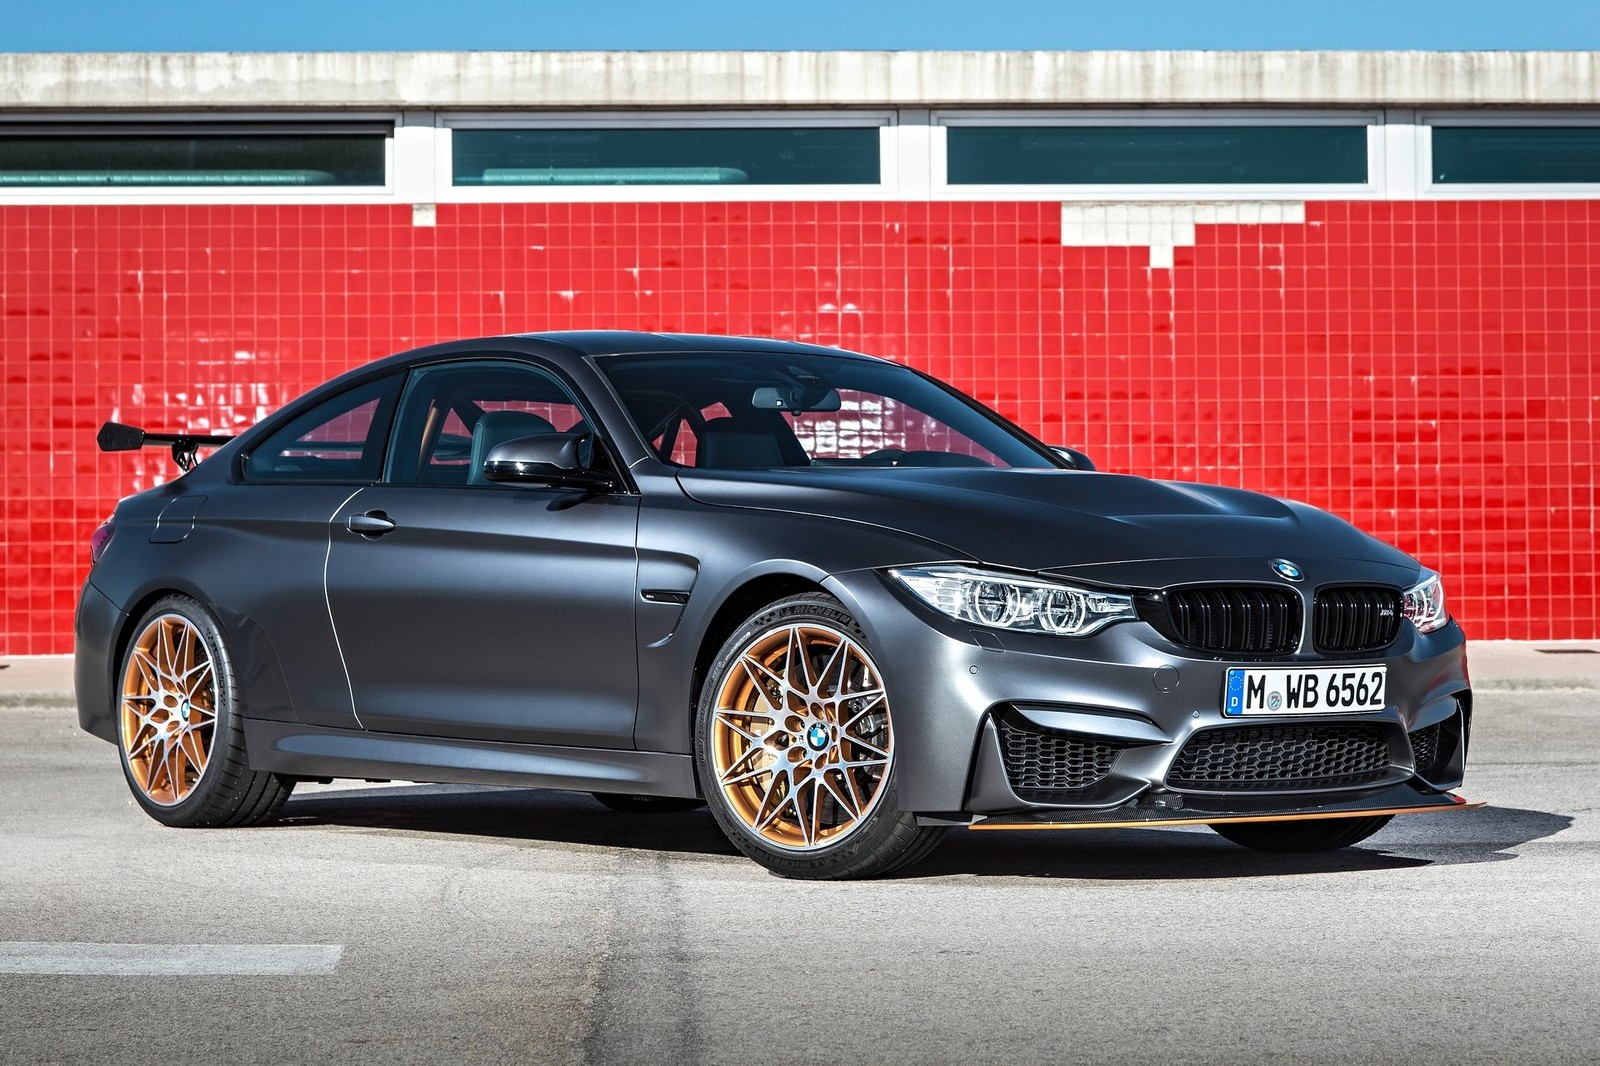 The M4 GTS uses water injection to boost power output from its turbocharged six-cylinder engine.